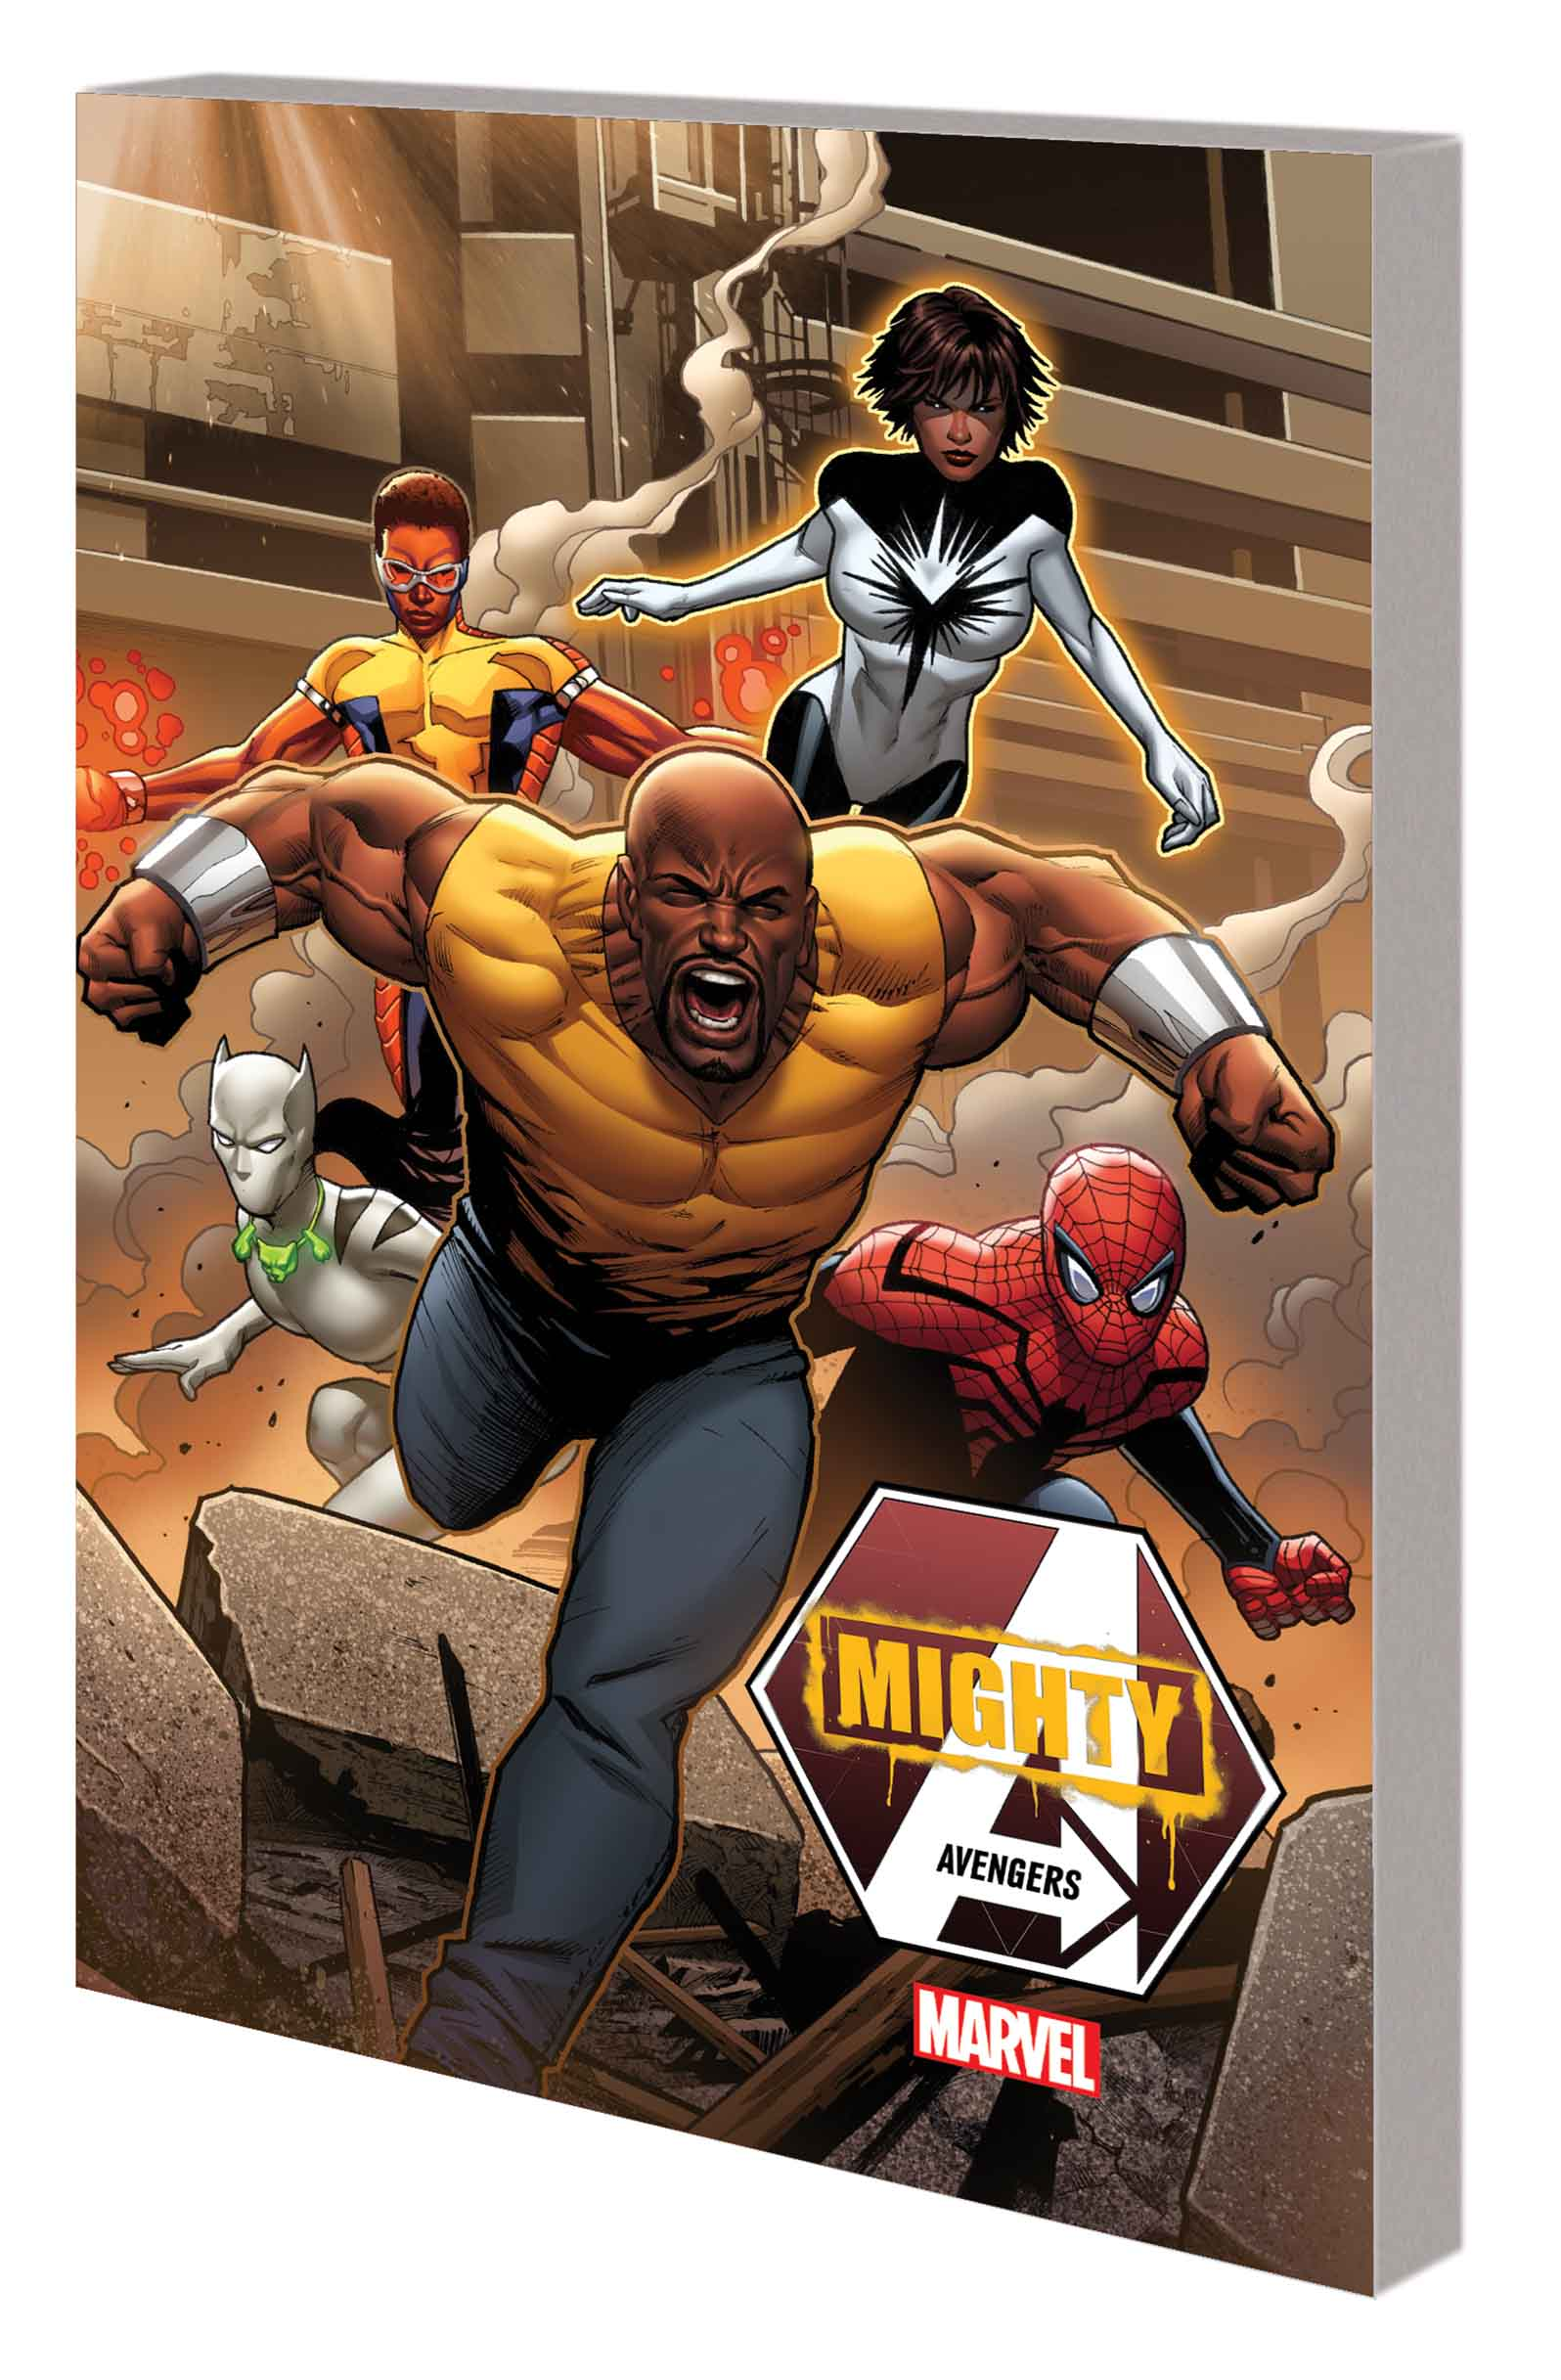 MIGHTY AVENGERS VOL. 1: NO SINGLE HERO TPB (Trade Paperback)